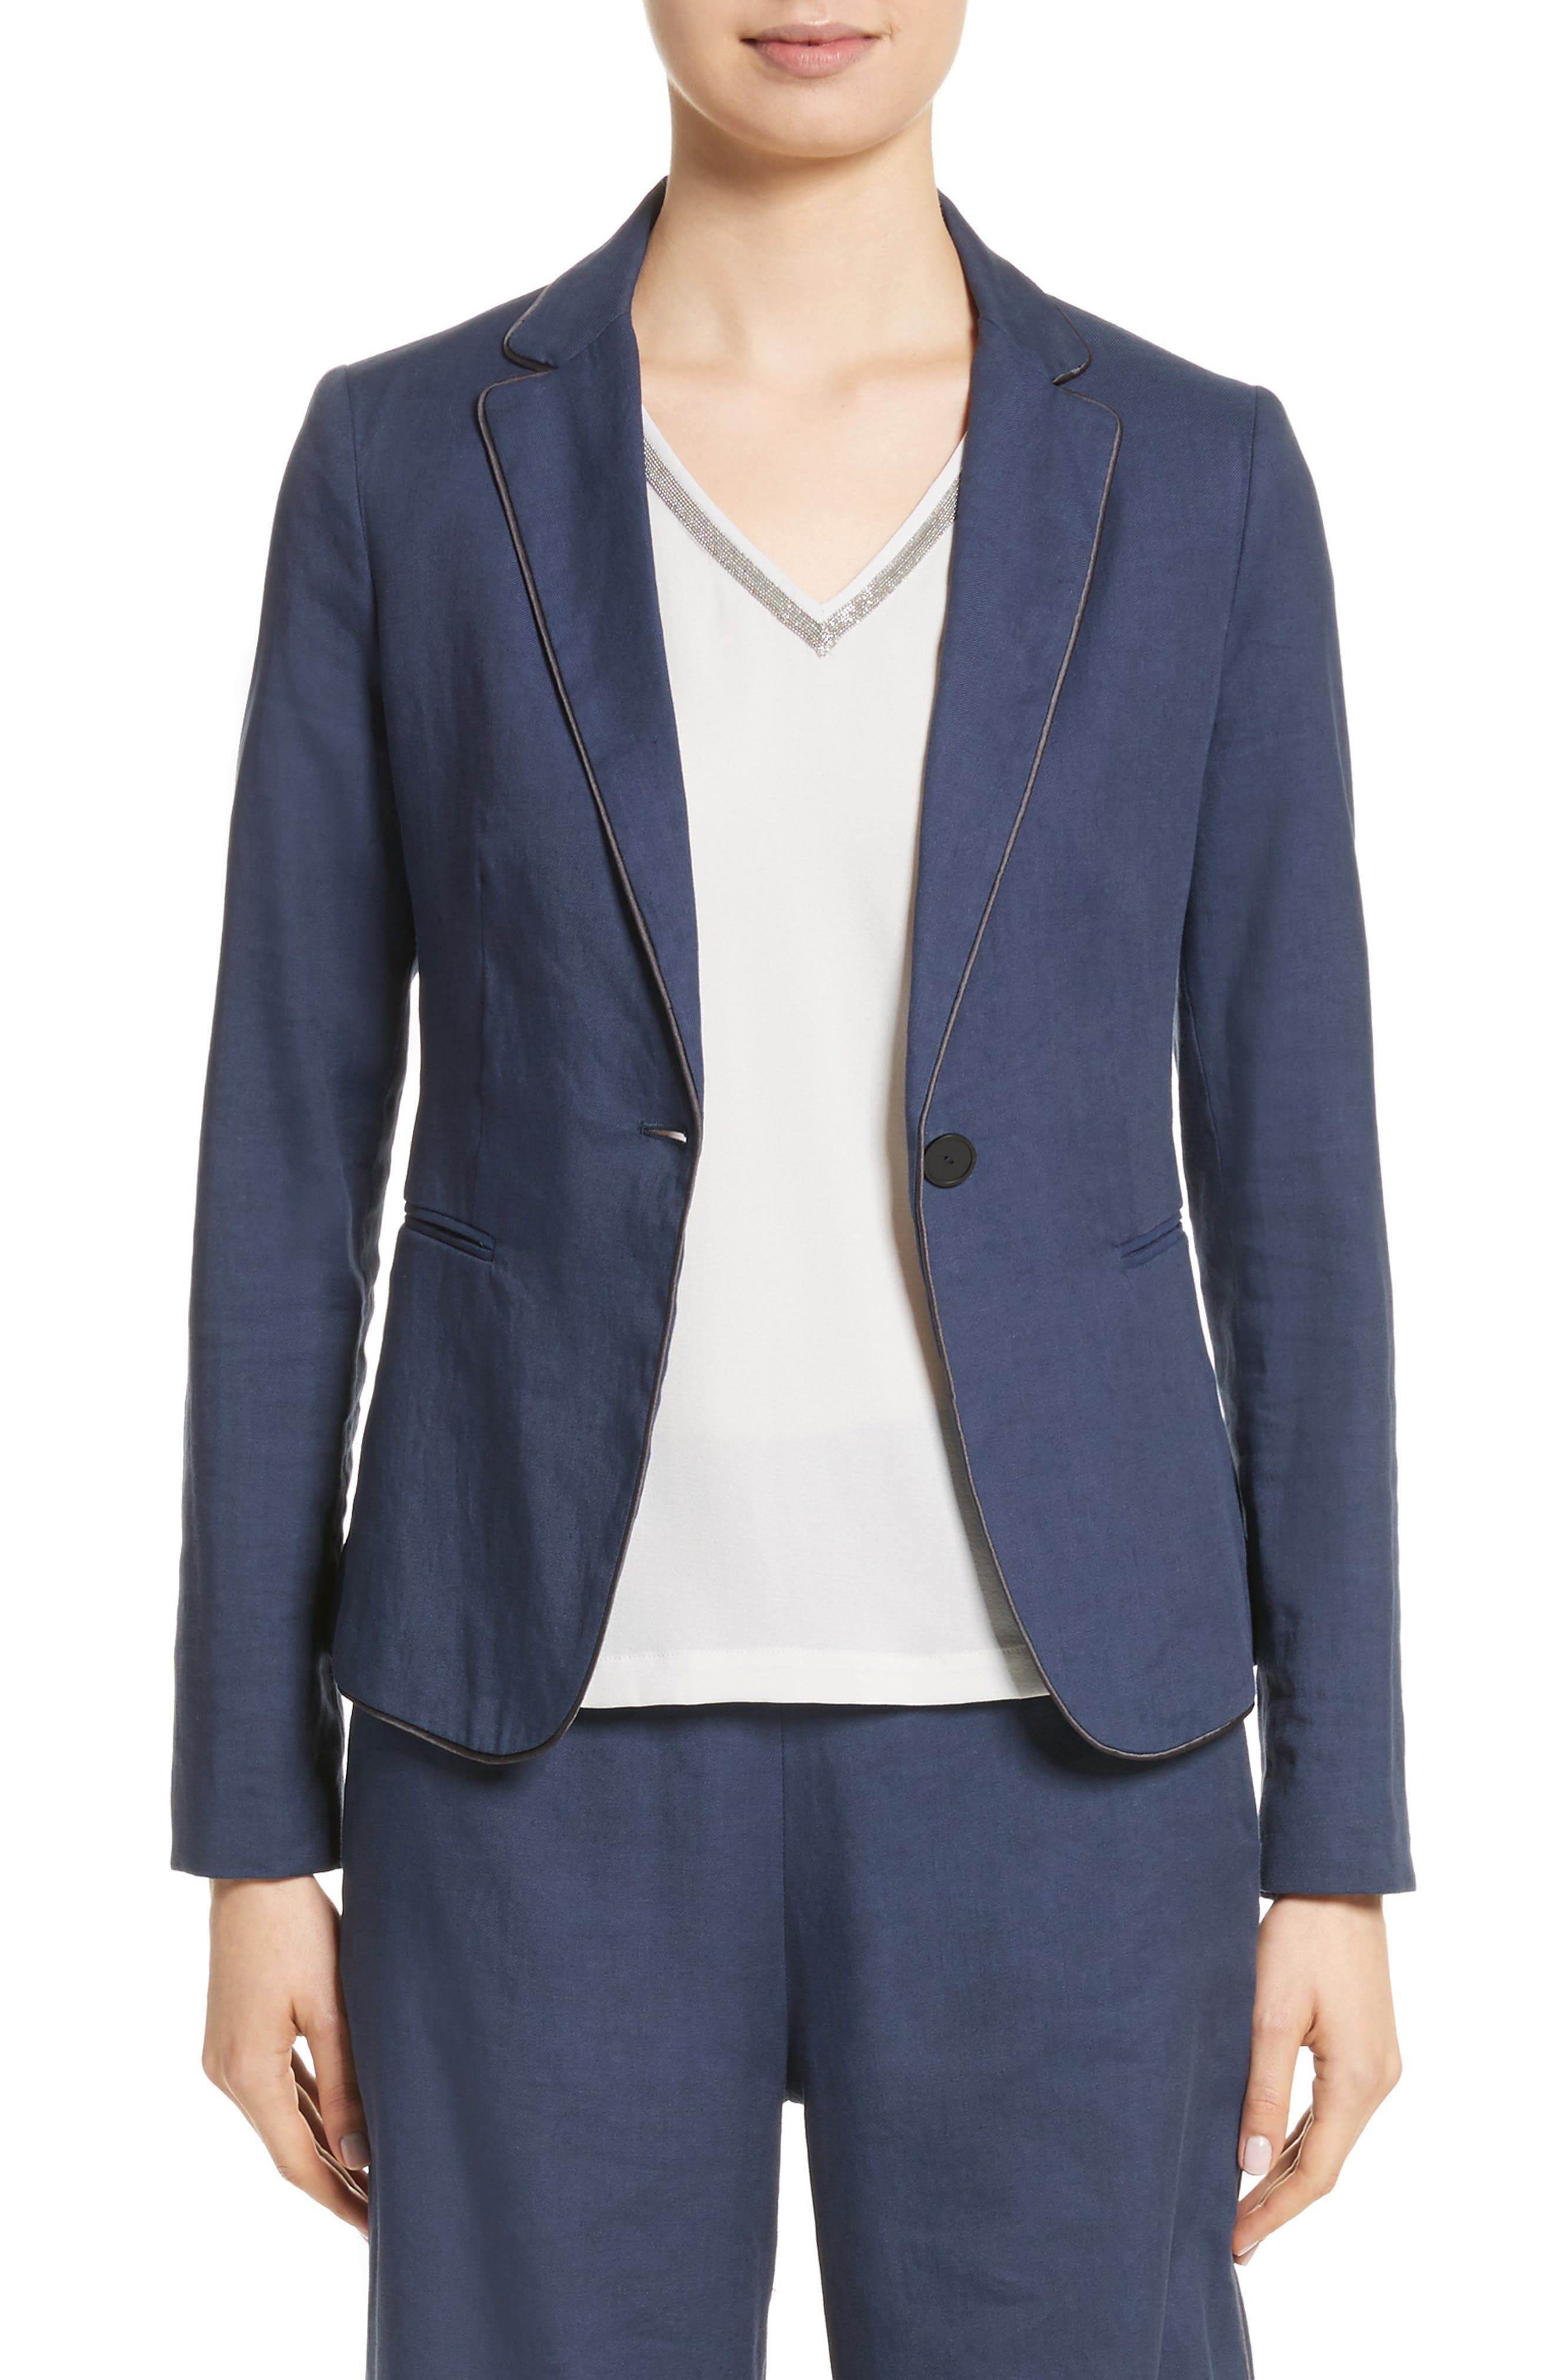 Piped Linen & Cotton Blend Blazer,                         Main,                         color, Navy